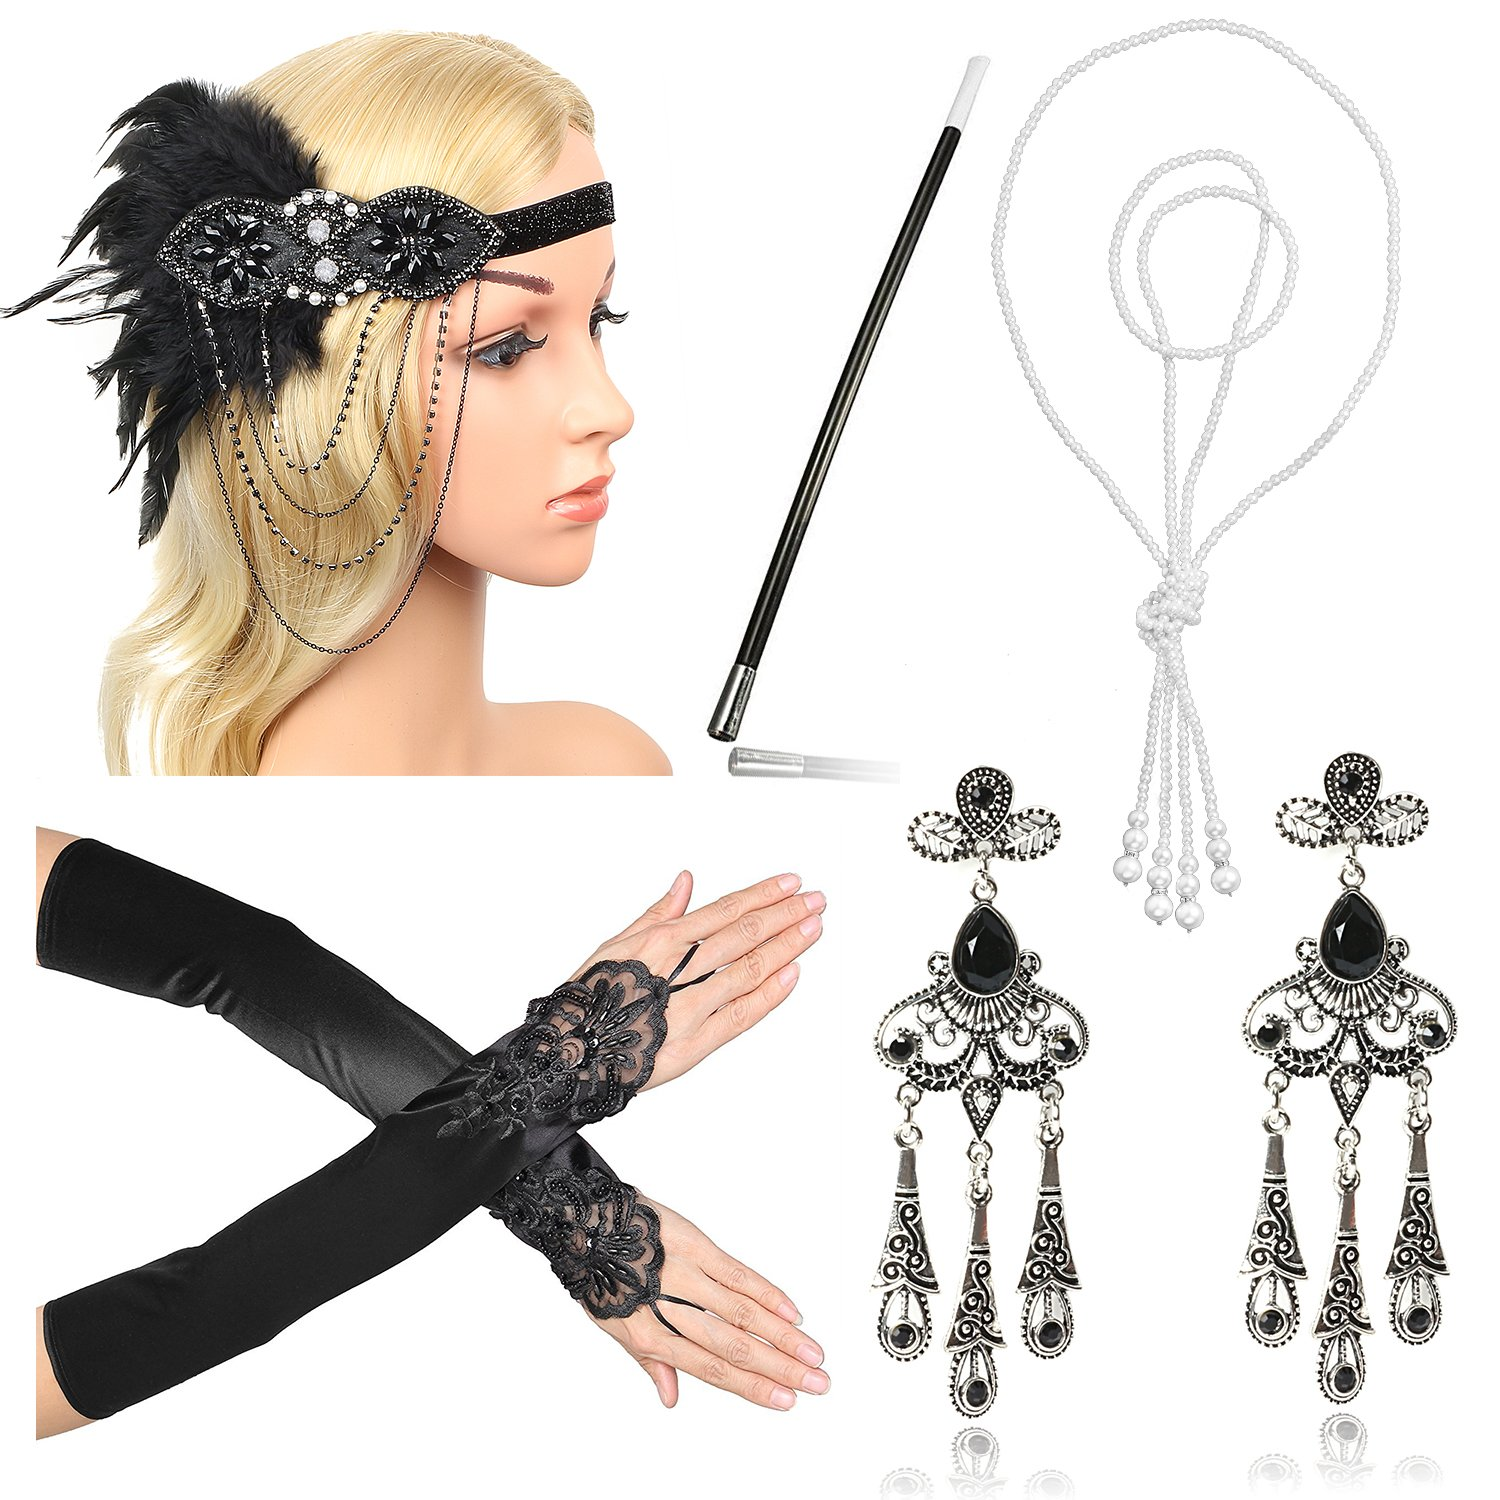 Beelittle 1920s Accessories Headband Earrings Necklace Gloves Cigarette Holder (G2)